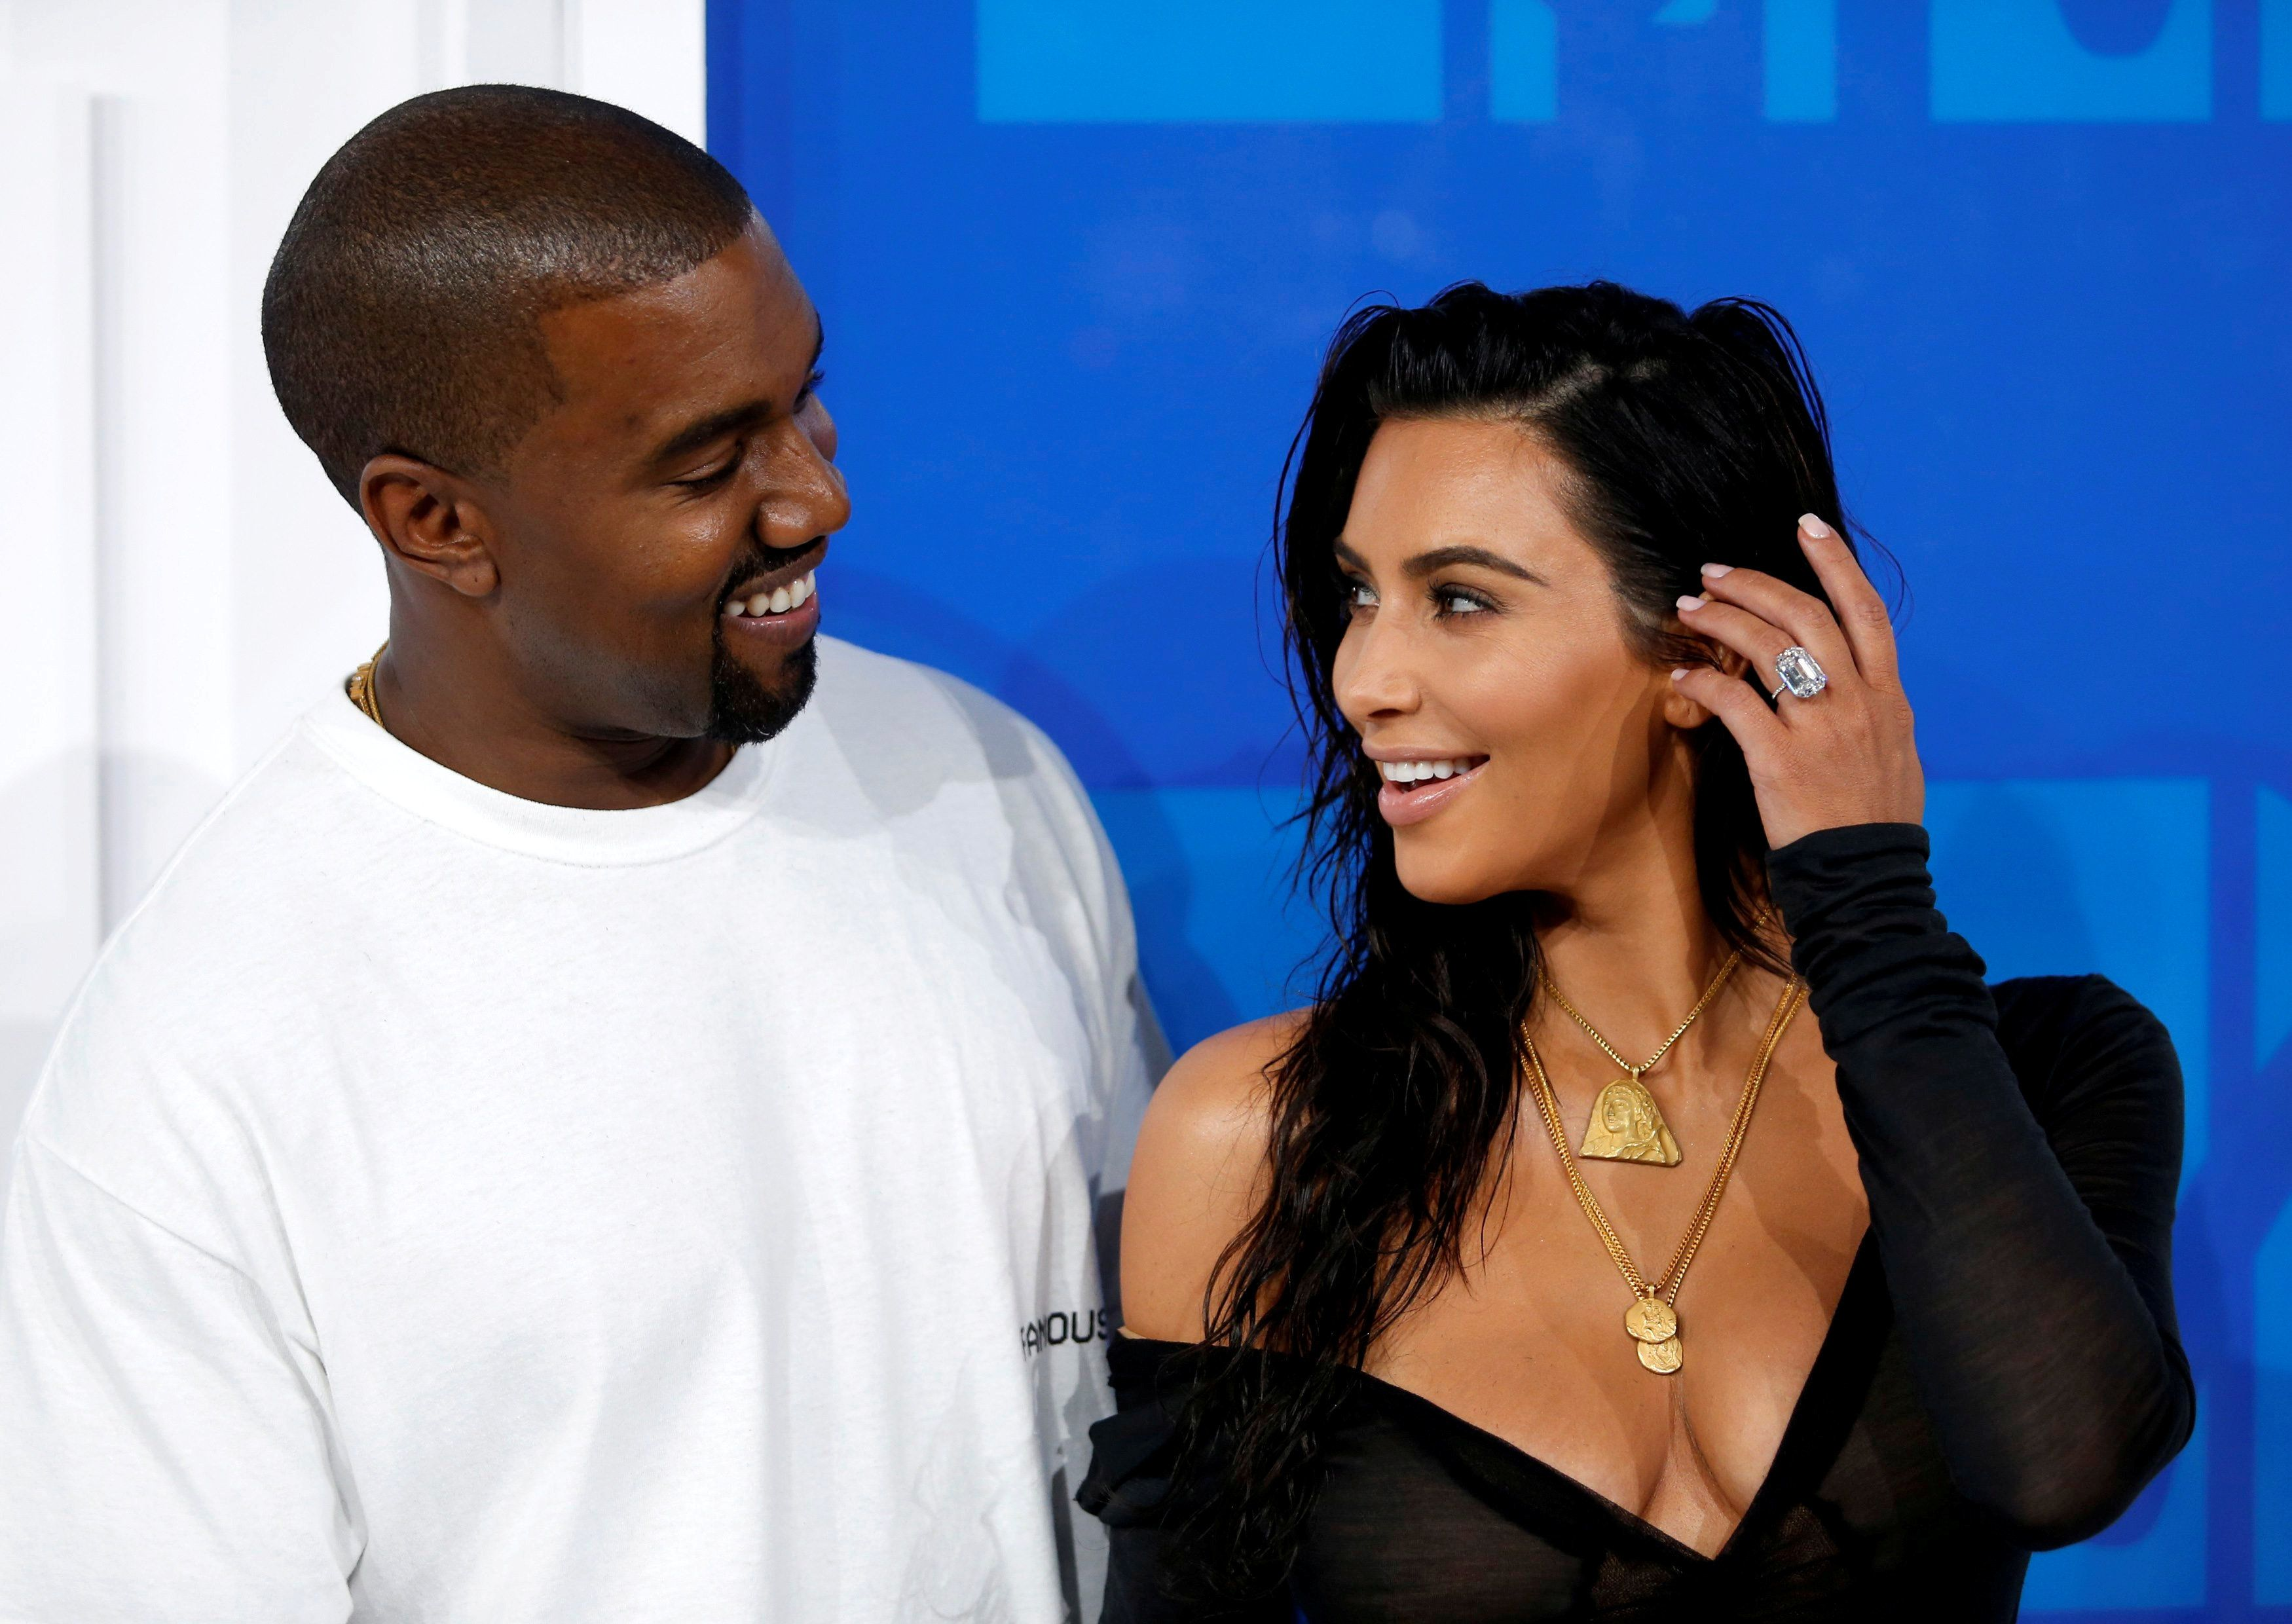 Kim Kardashian And Kanye West Are Not Divorcing, E! News